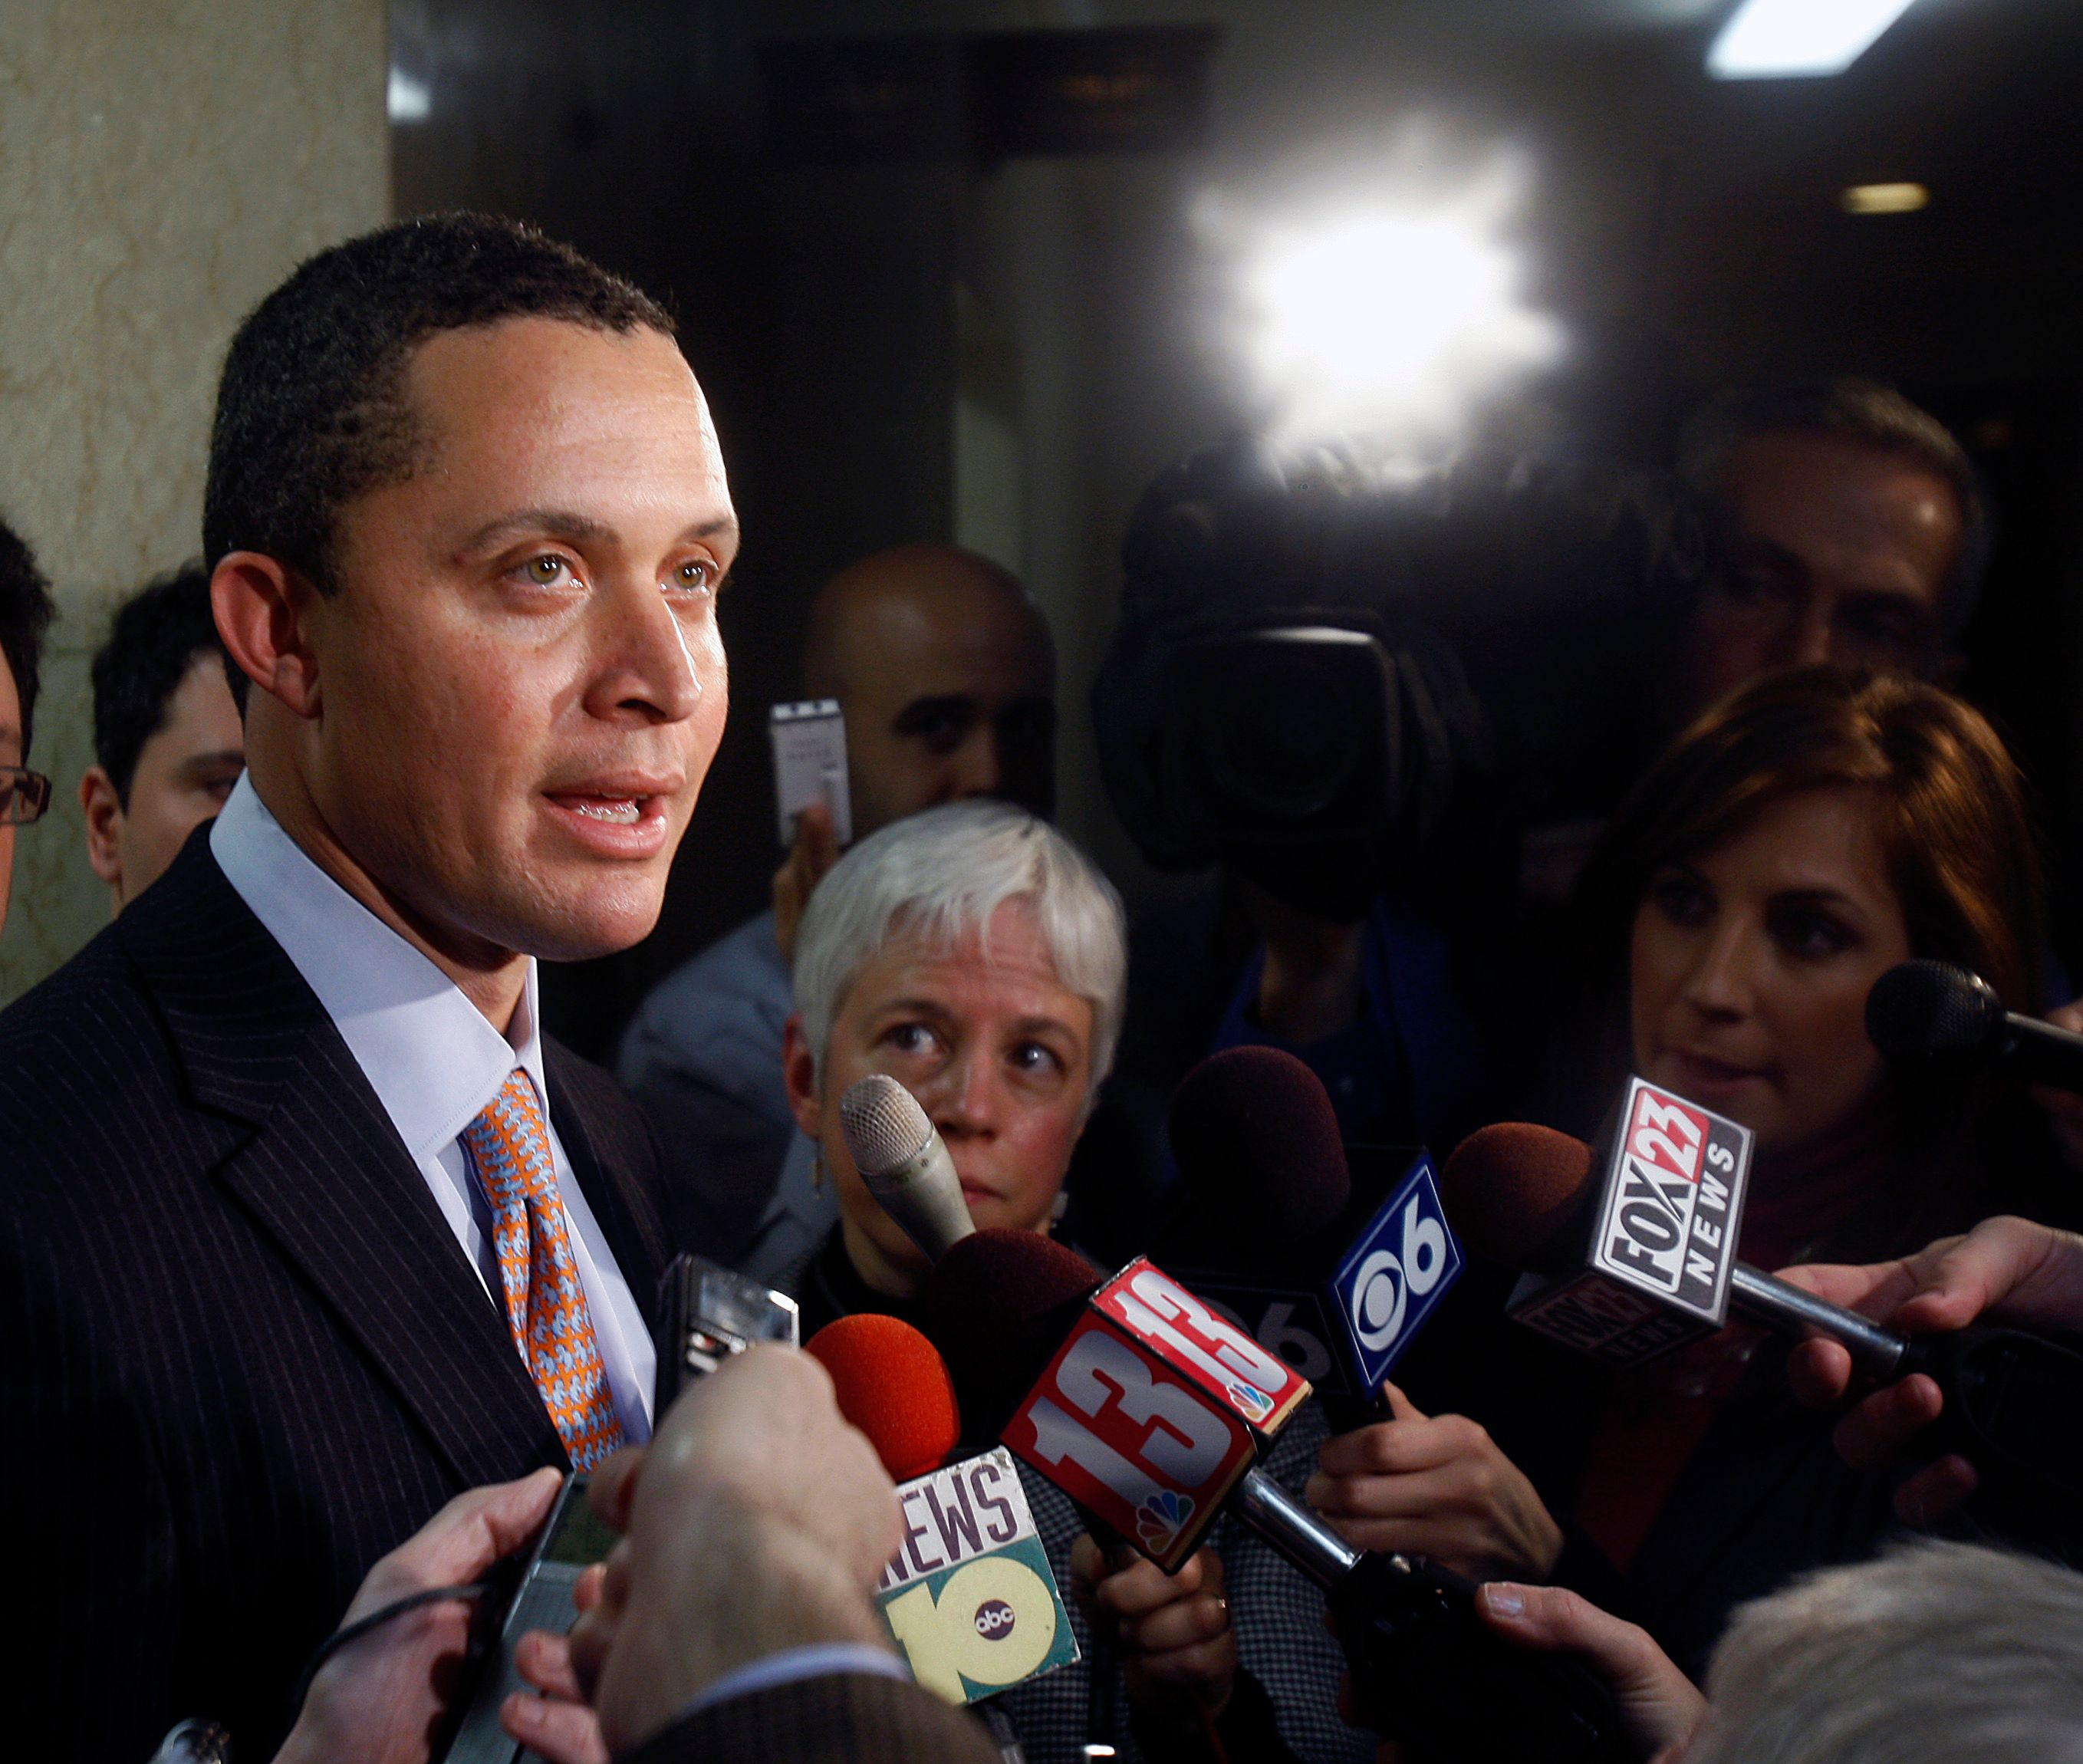 Harold Ford Jr. won't contribute to MSNBC until resolving allegations